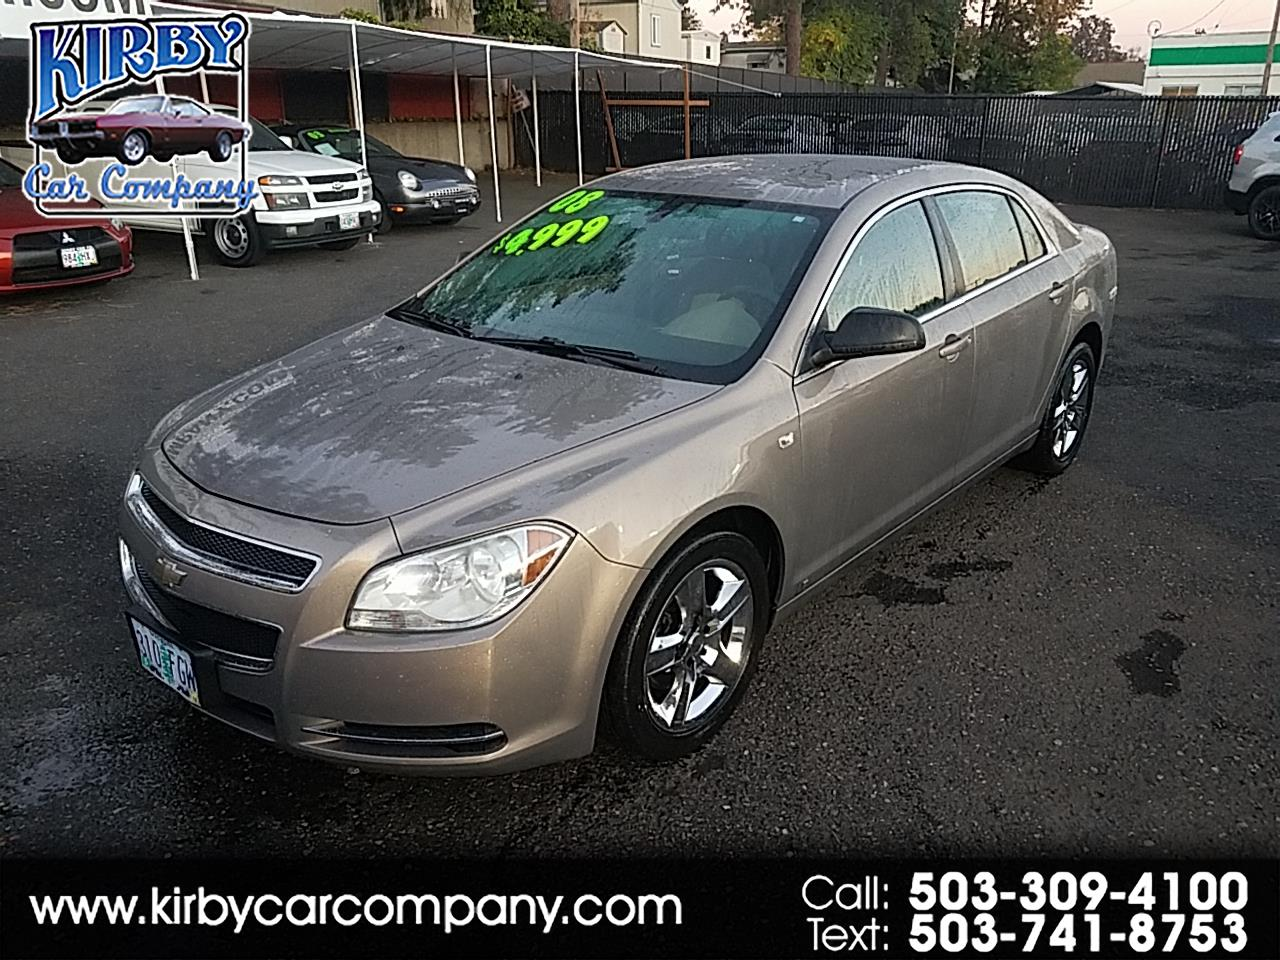 2008 Chevrolet Malibu SEDAN  CLEAN TITLE & CARFAX!!  30 MILES PER GALLON